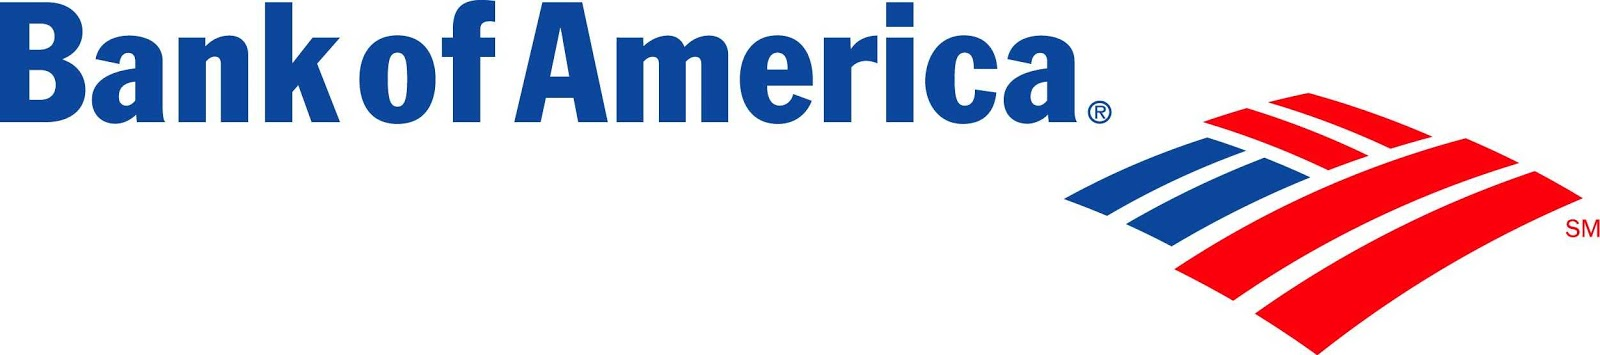 History of All Logos All Bank of America